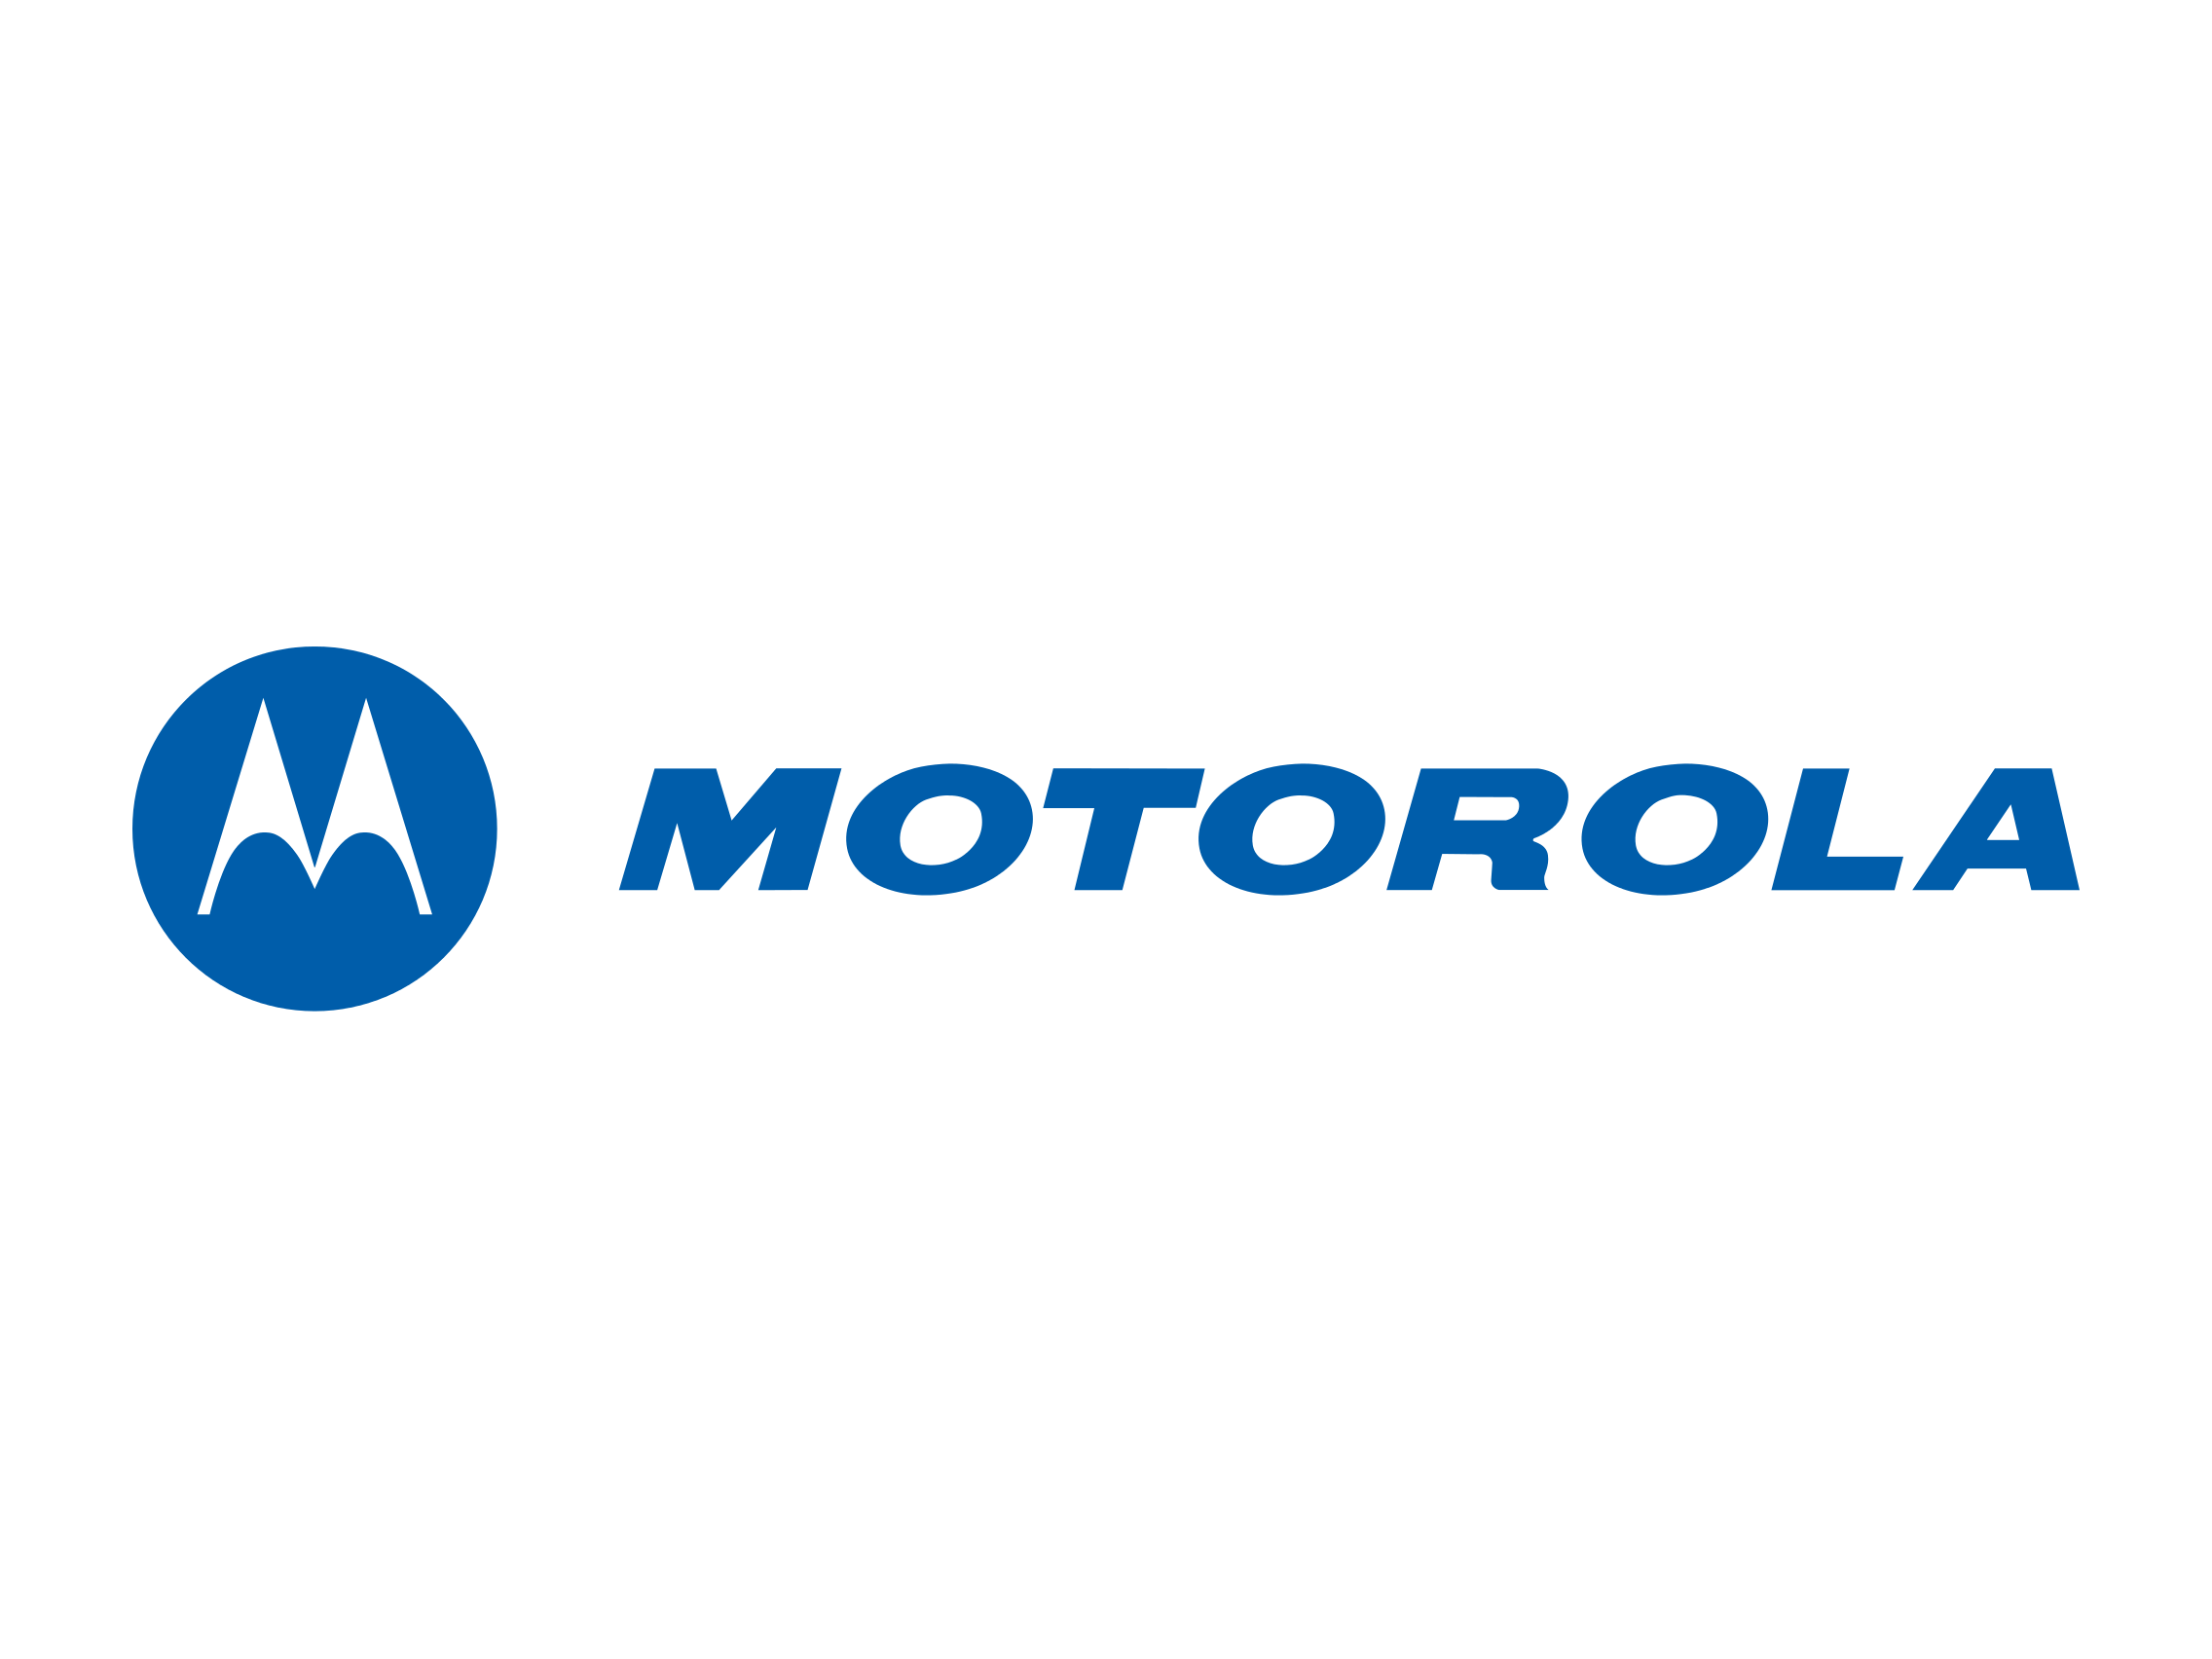 Motorola - Motorola Solutions is a leading provider of mission-critical communication solutions and services for enterprise and government customers. Through leading-edge innovation and communications technology, it is a global leader that enables its customers to be their best in the moments that matter.